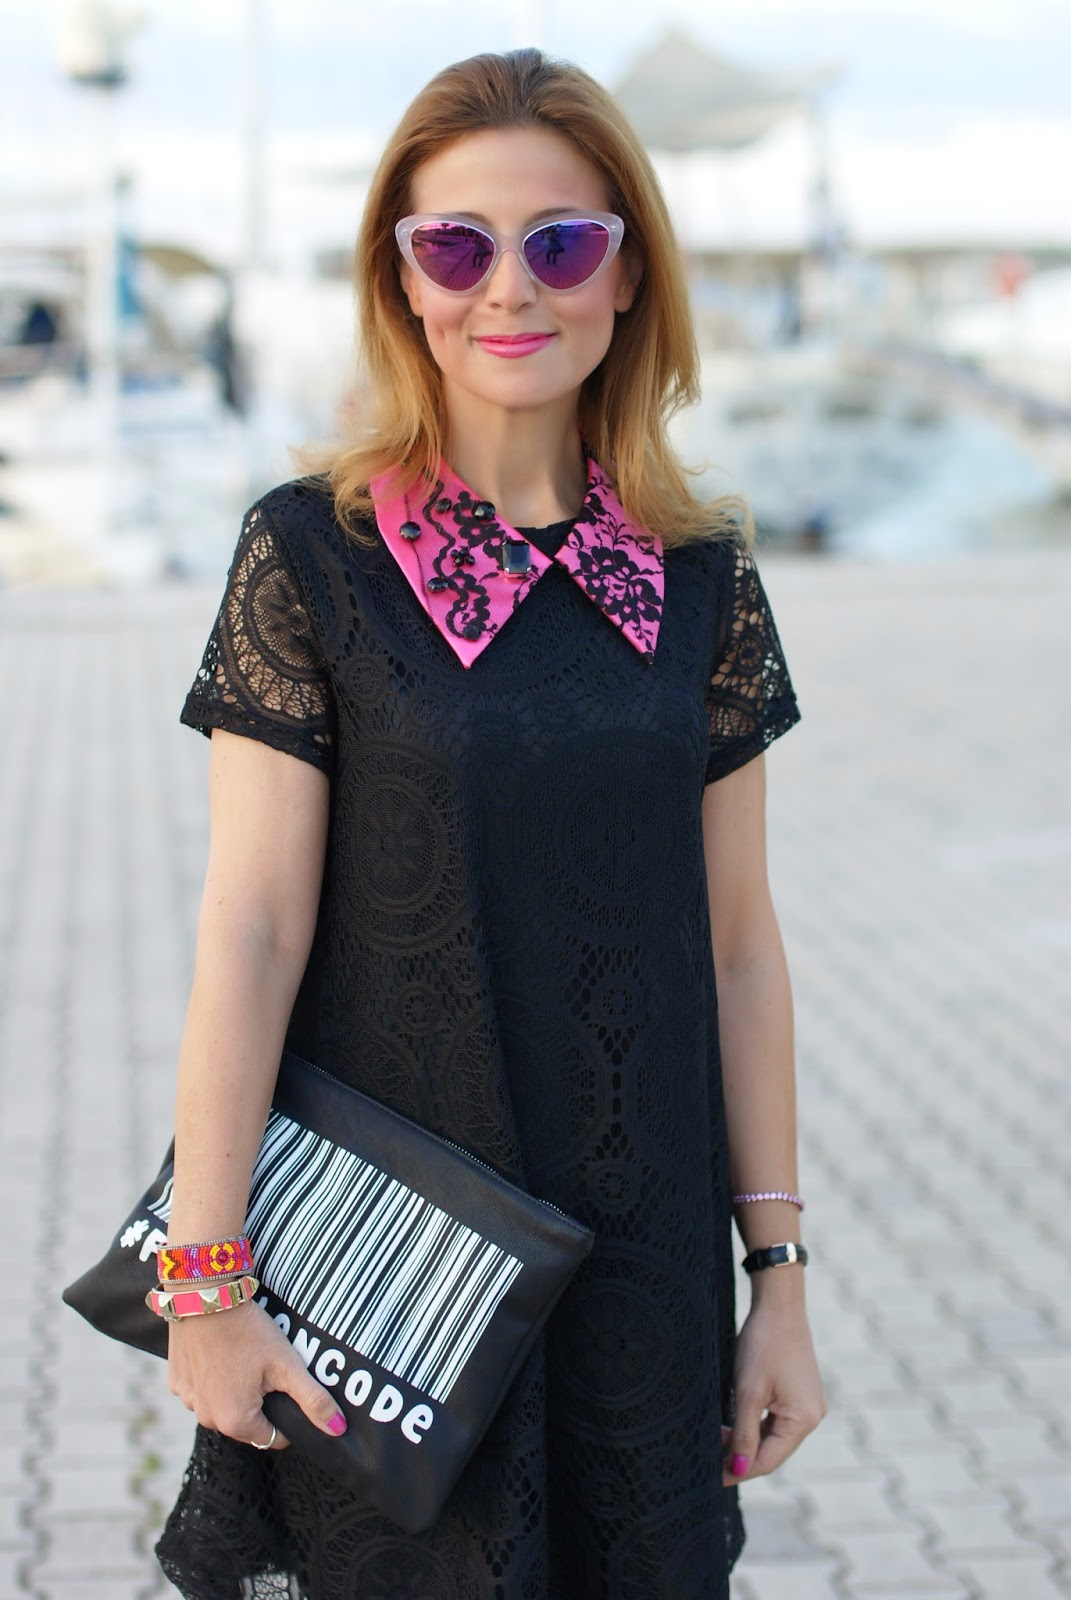 Essequadro eyewear, Fato creazioni, Blackfive lace dress, pink sunglasses, Zara urban code clutch, Fashion and Cookies, fashion blogger